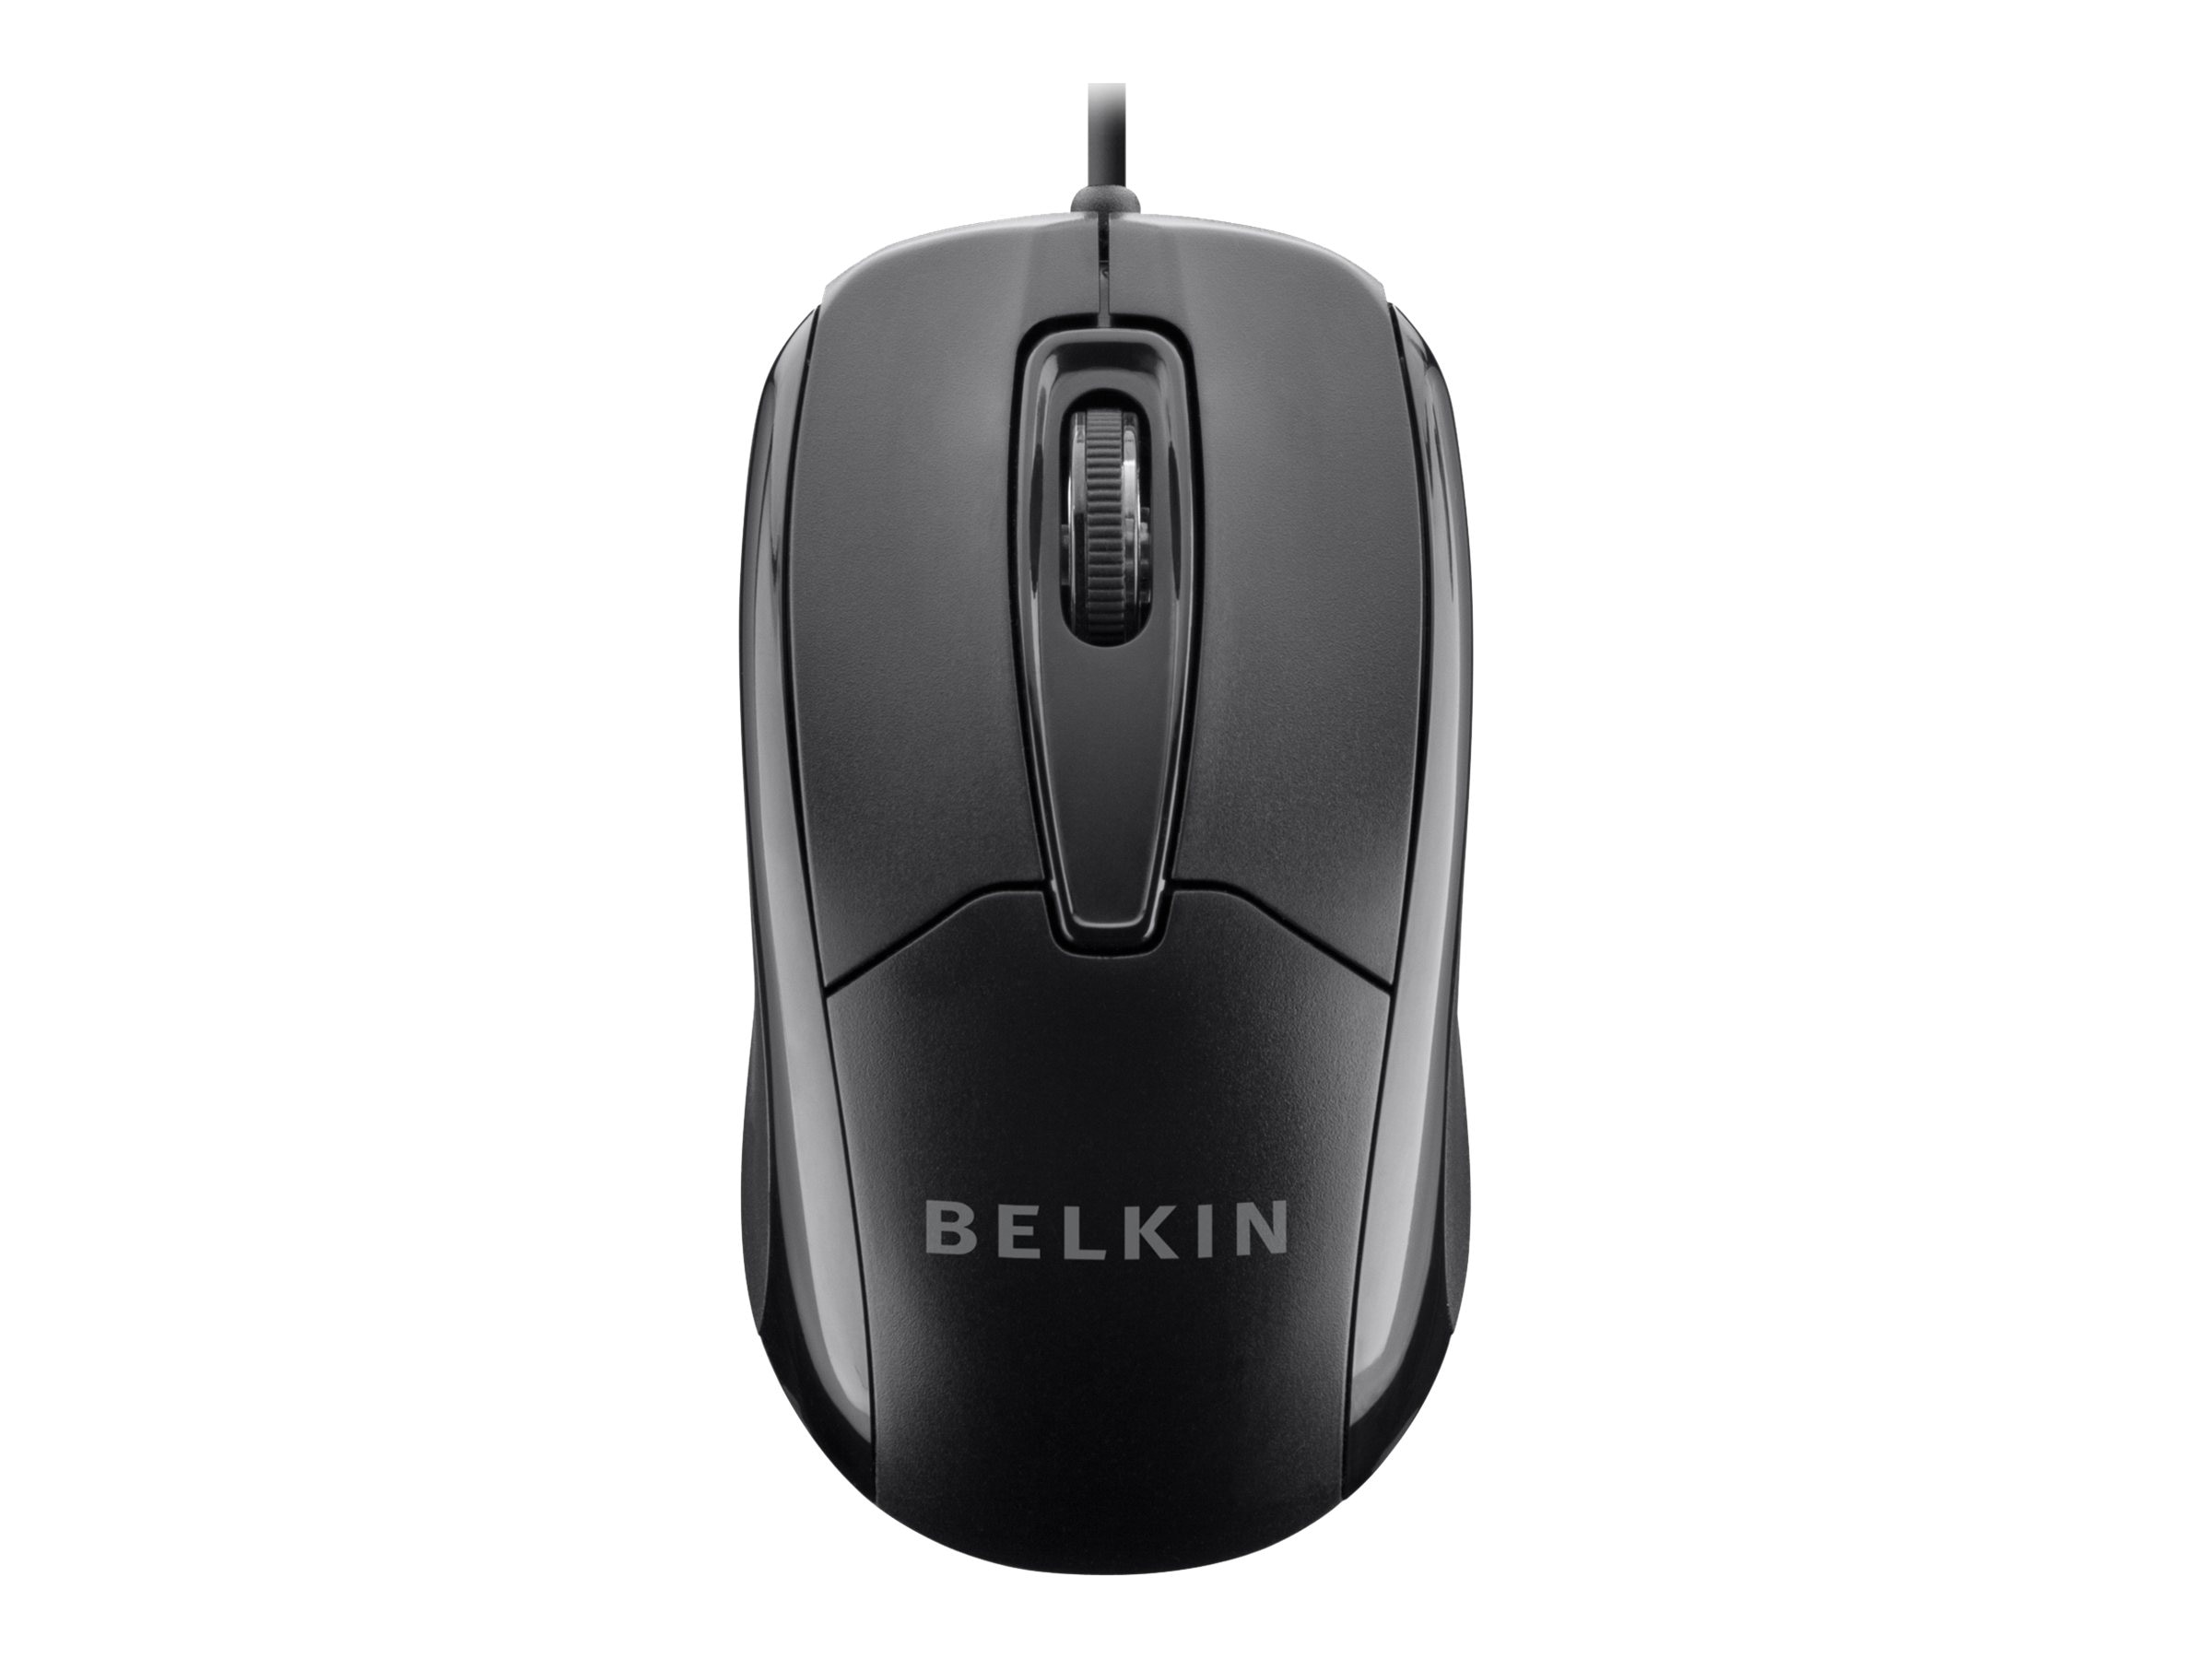 Belkin Wired Mouse Ergonomic USB PNP Black